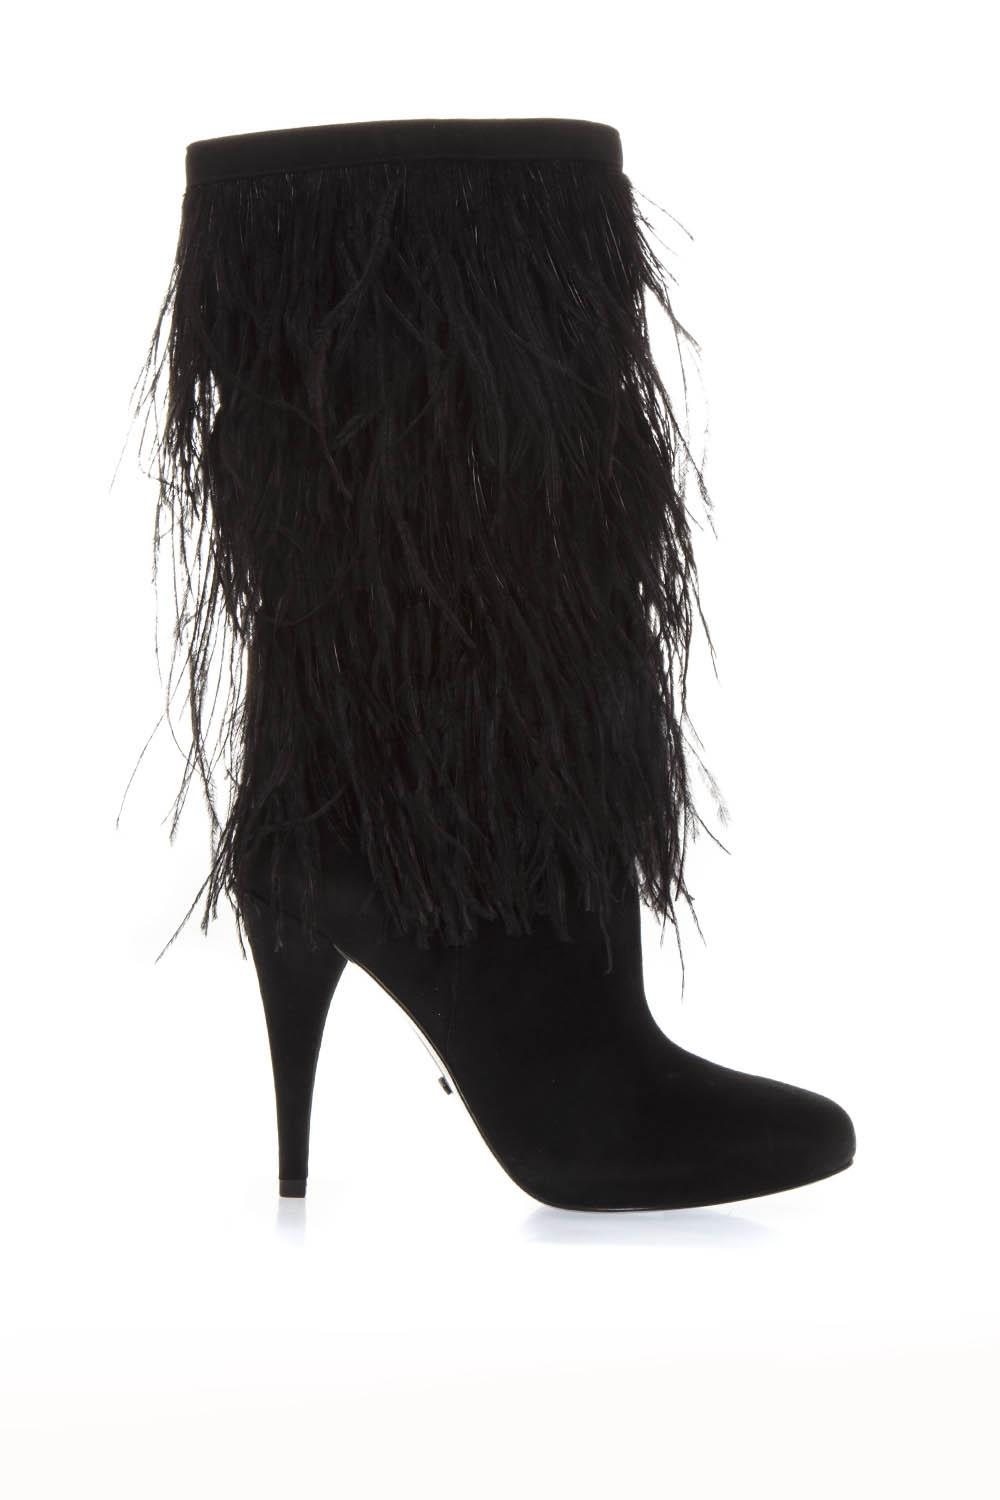 5f12c830cd8c BLACK SUEDE BOOTS WITH DECORATIVE FEATHERS APPLIED FW 2018 - MICHAEL  MICHAEL KORS - Boutique Galiano